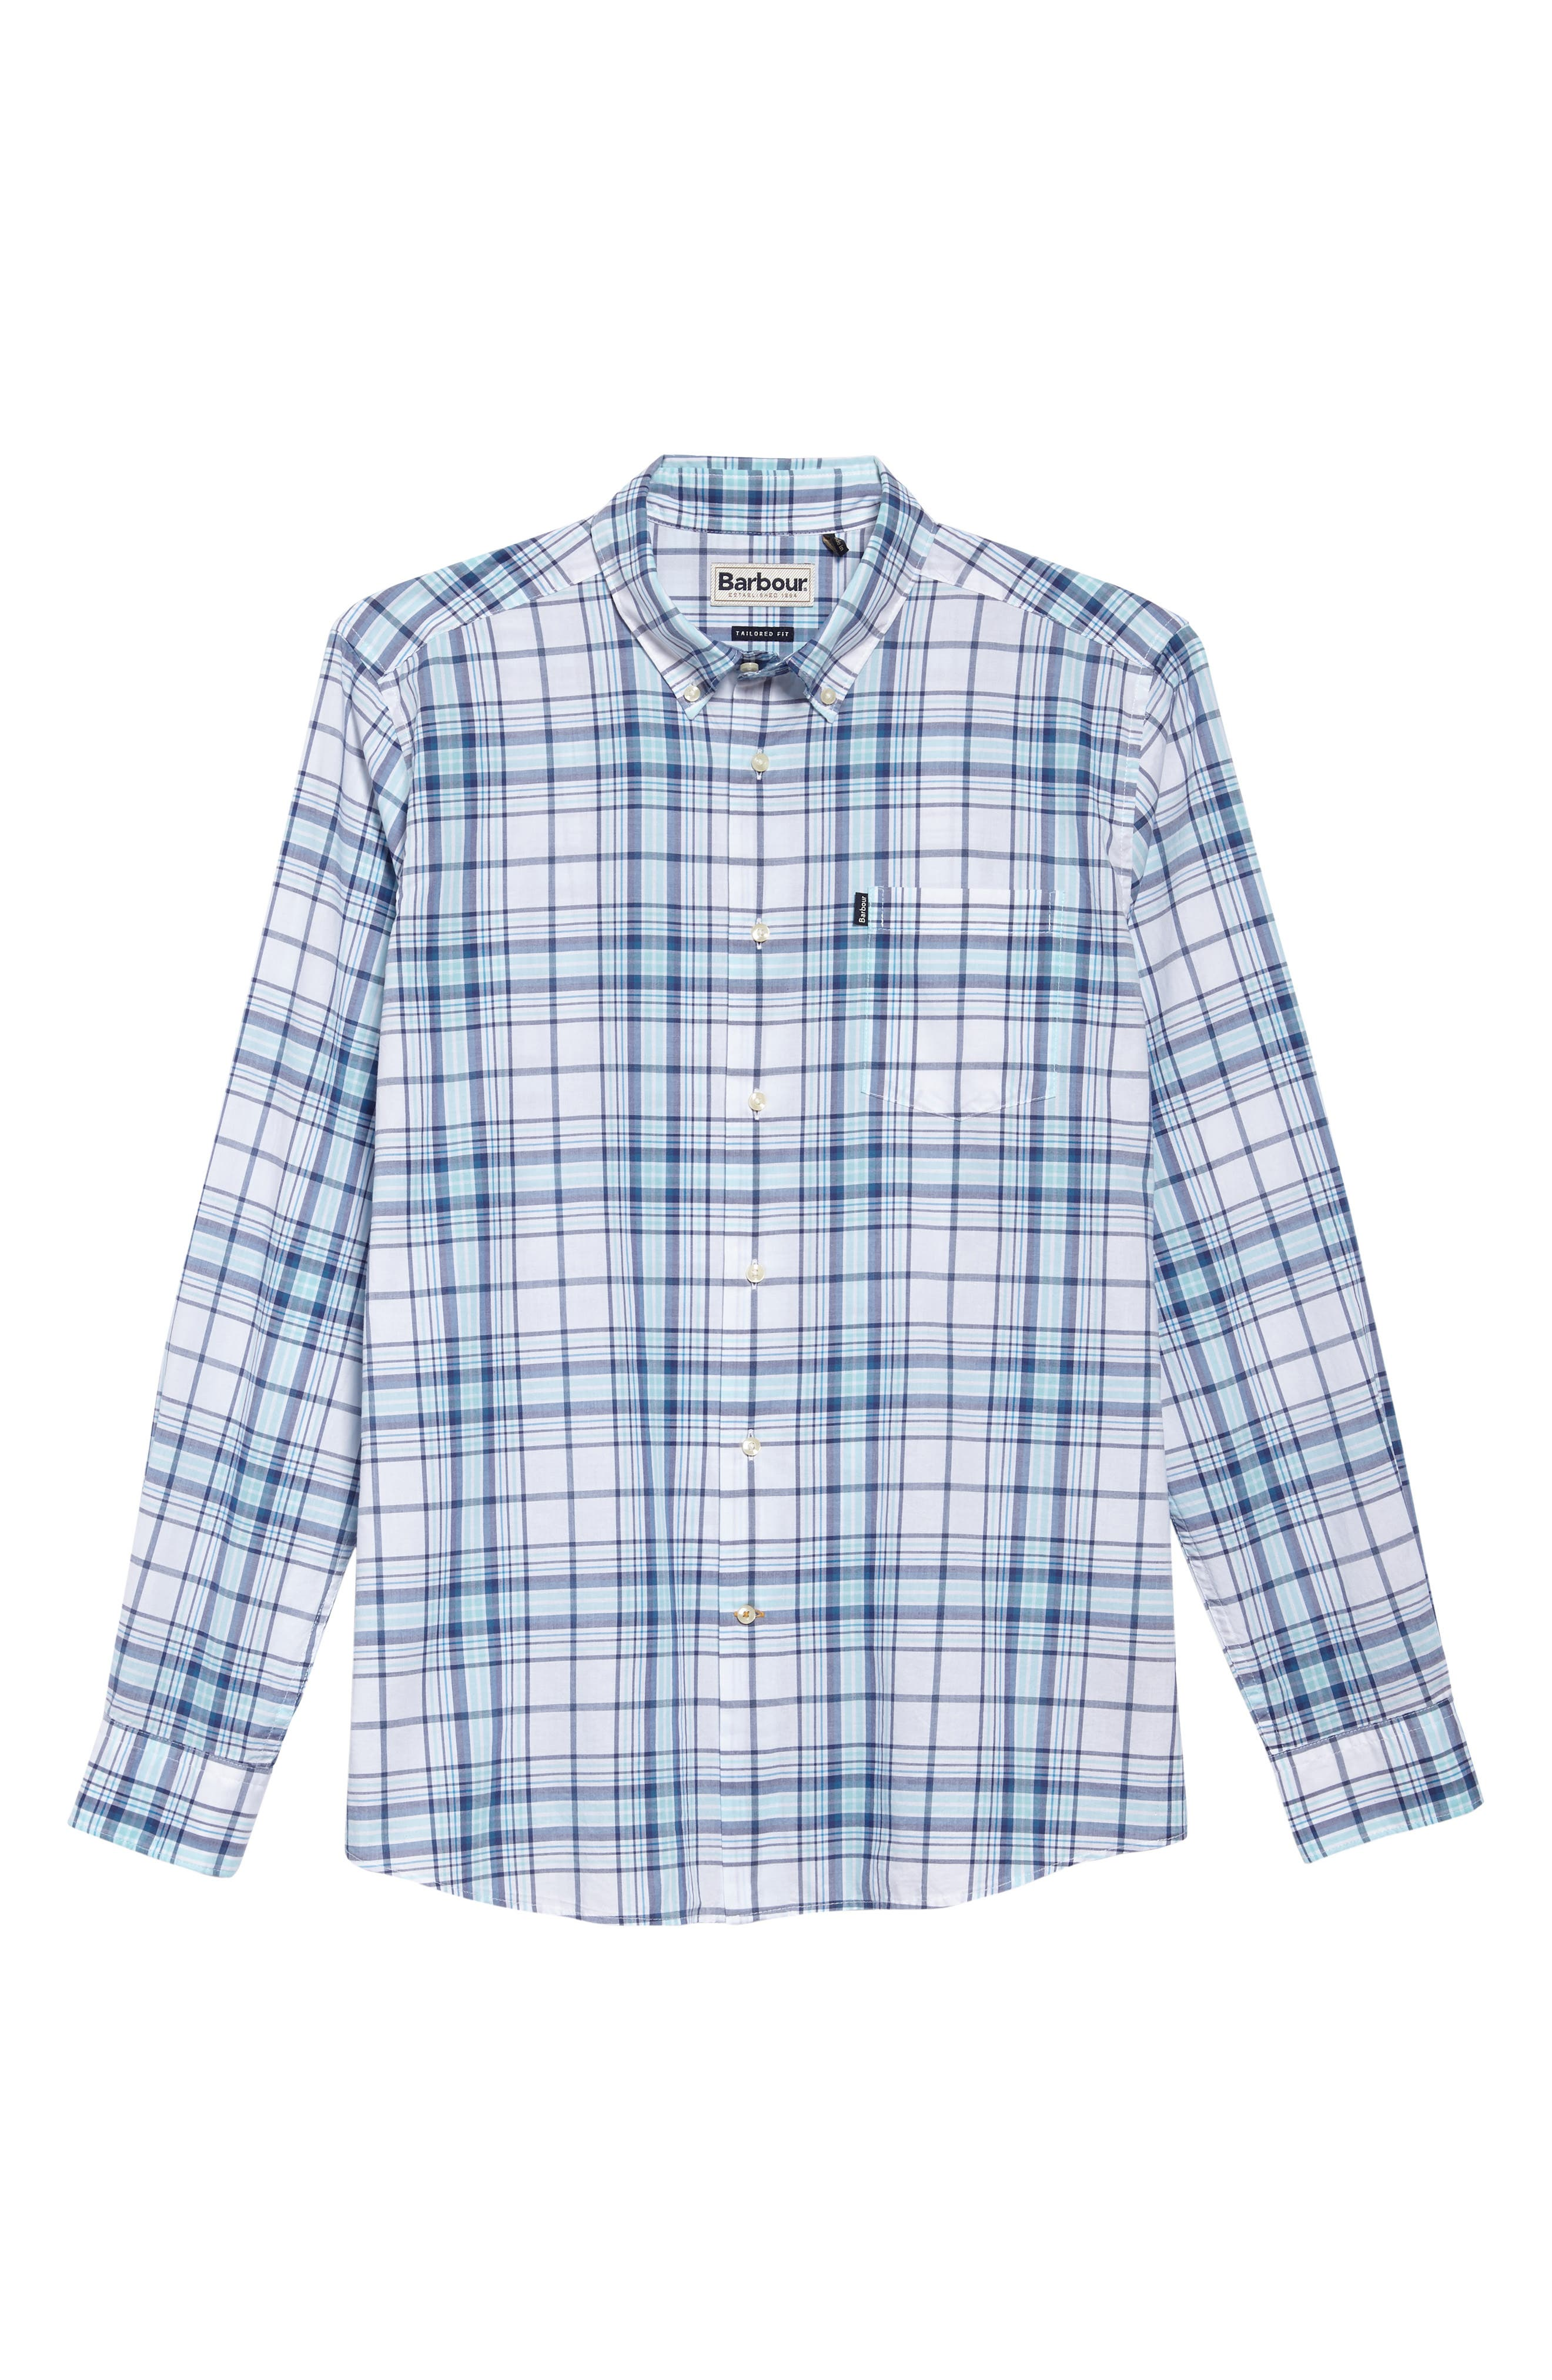 Christopher Tailored Fit Plaid Sport Shirt,                             Alternate thumbnail 5, color,                             440